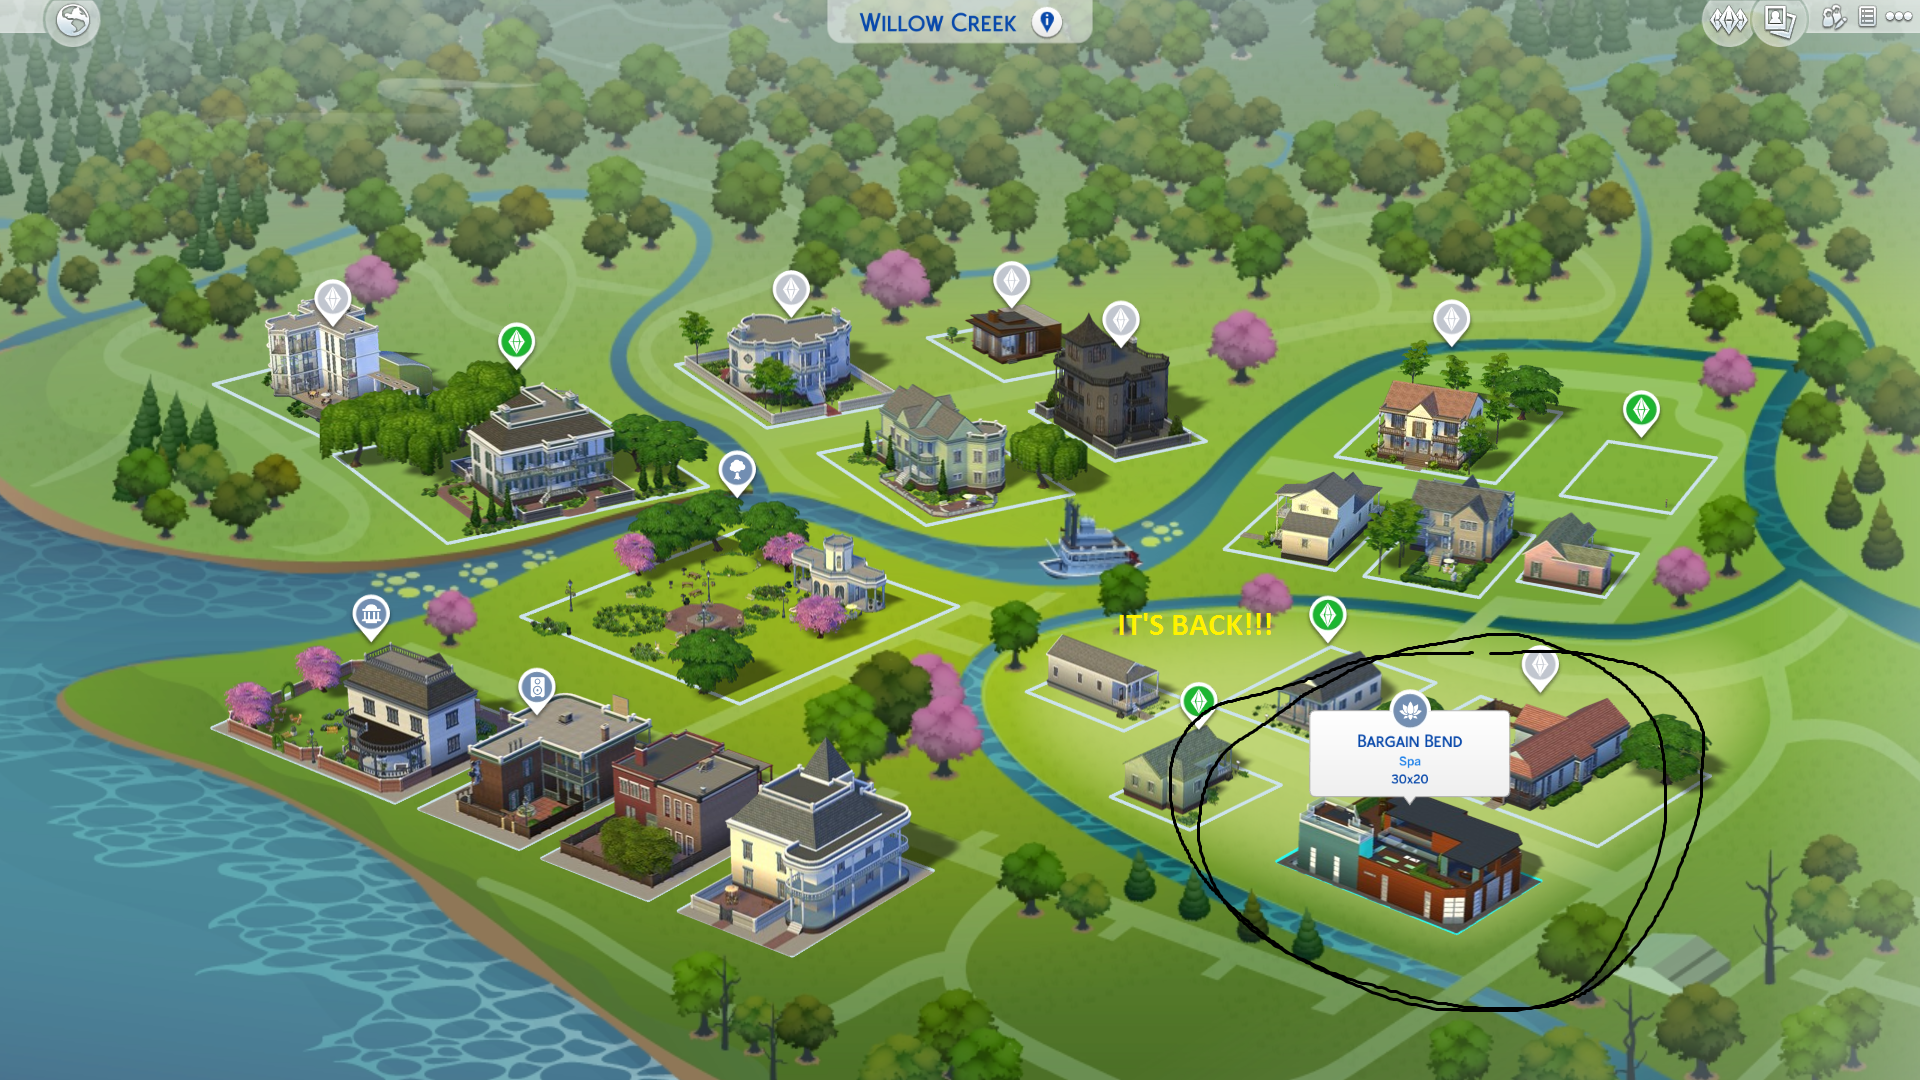 Sims 4: Community Lots and Houses Missing or Invisible